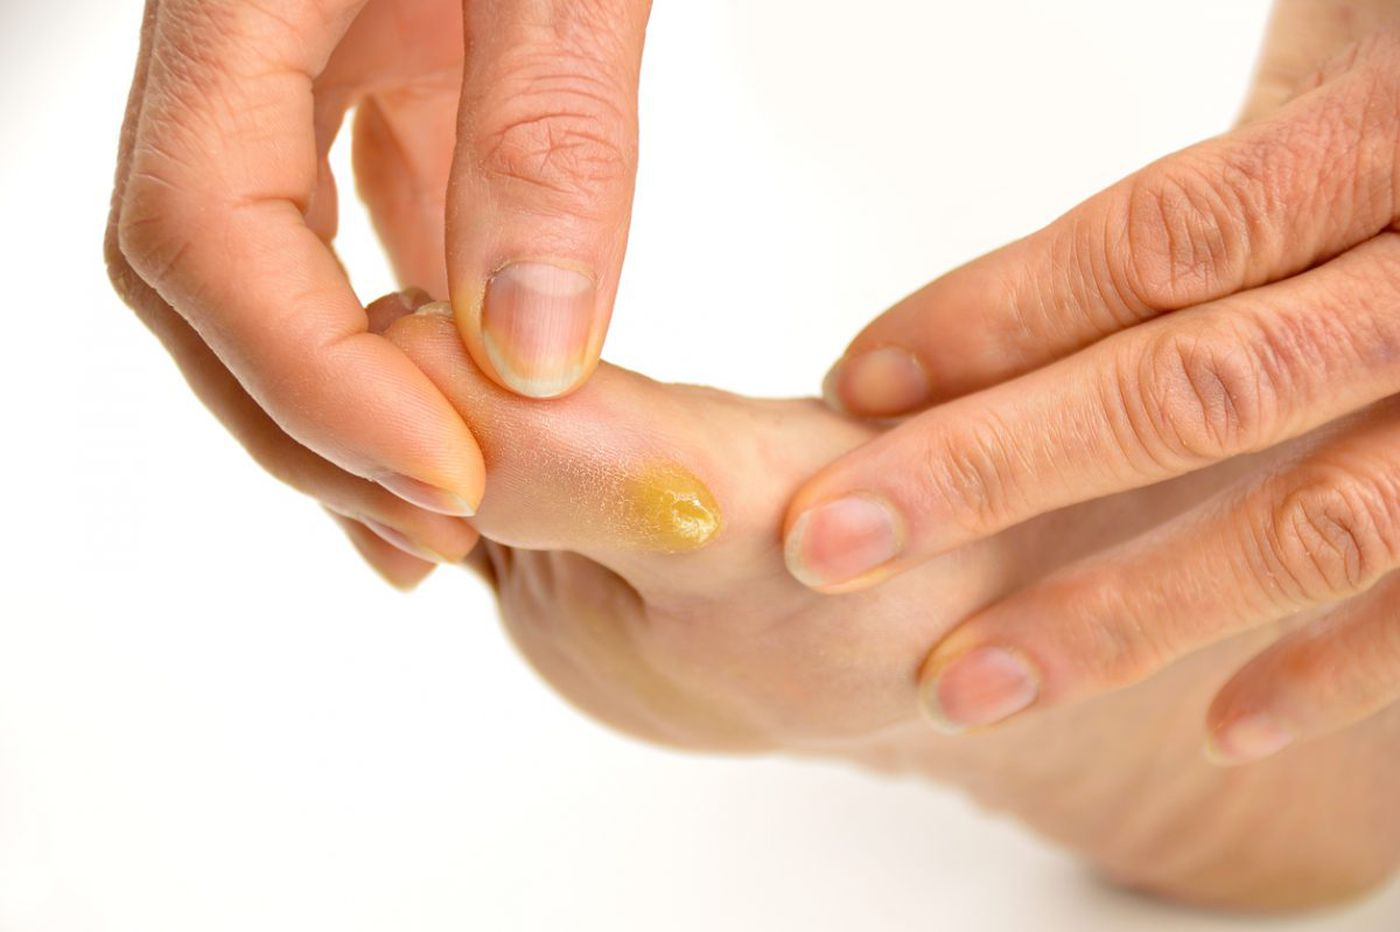 He thought it was a blister, but it was a deadly bacteria consuming his foot